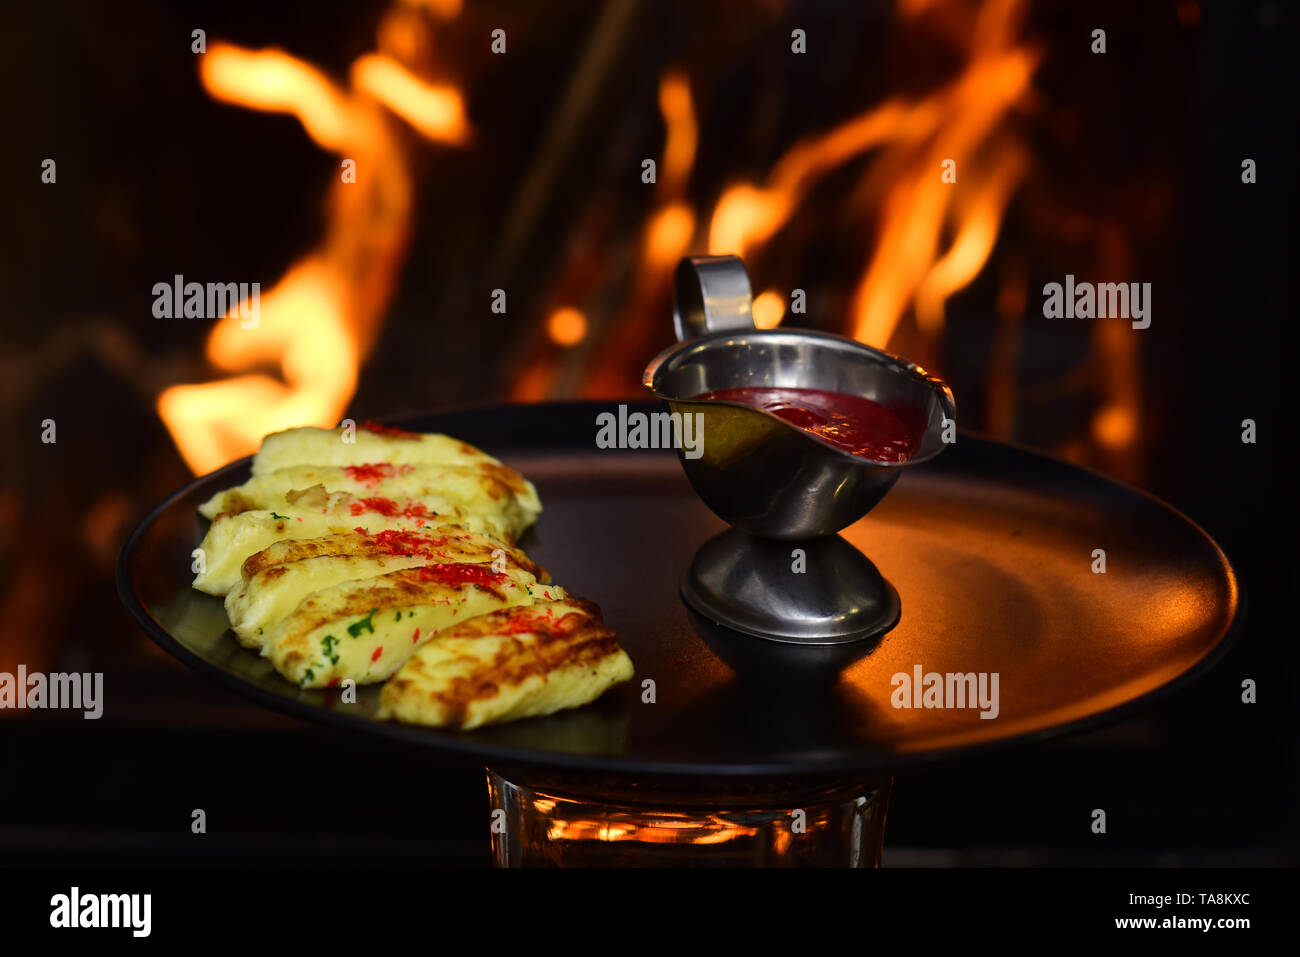 Dip sauce served to food item on burning fire background. Red fruit berry dip in saucepan. It is never too spicy - Stock Image